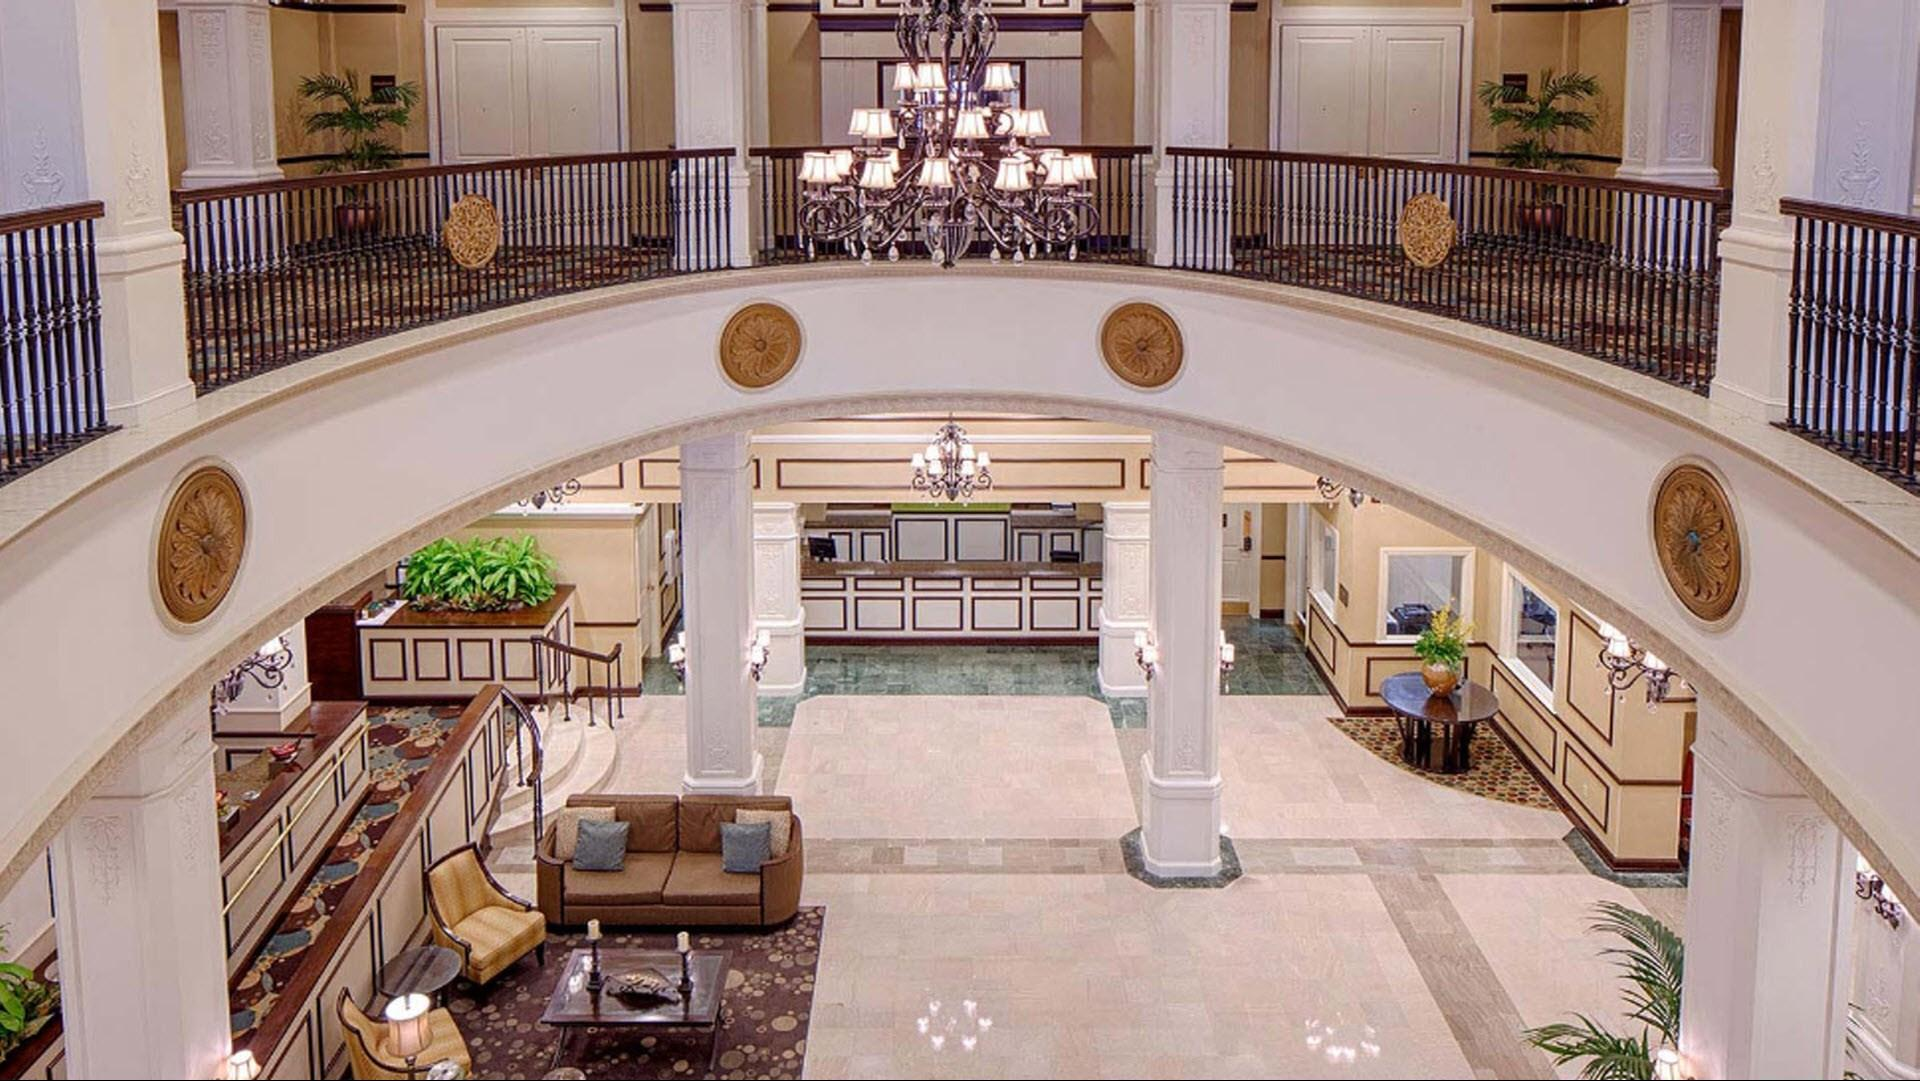 Meetings And Events At Hilton Garden Inn Jackson Downtown, Jackson, MS, US Amazing Design